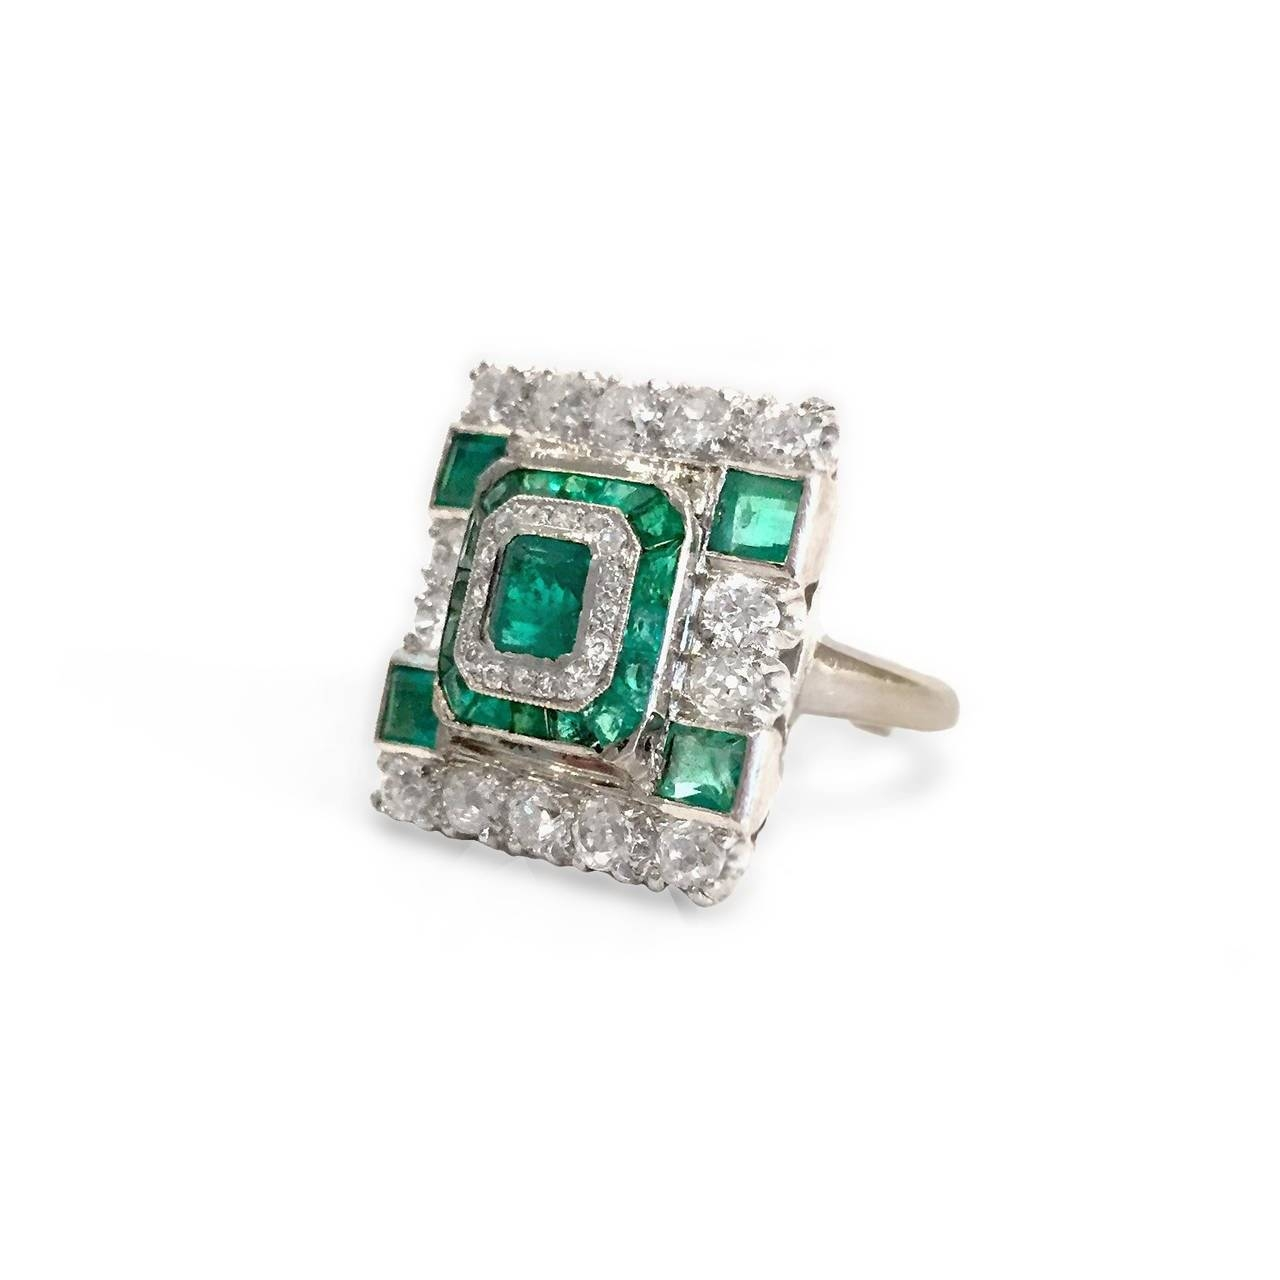 Art Deco Princess Cut Emerald Diamond Gold Ring At 1Stdibs For Princess Cut Emerald Engagement Rings (Gallery 14 of 15)